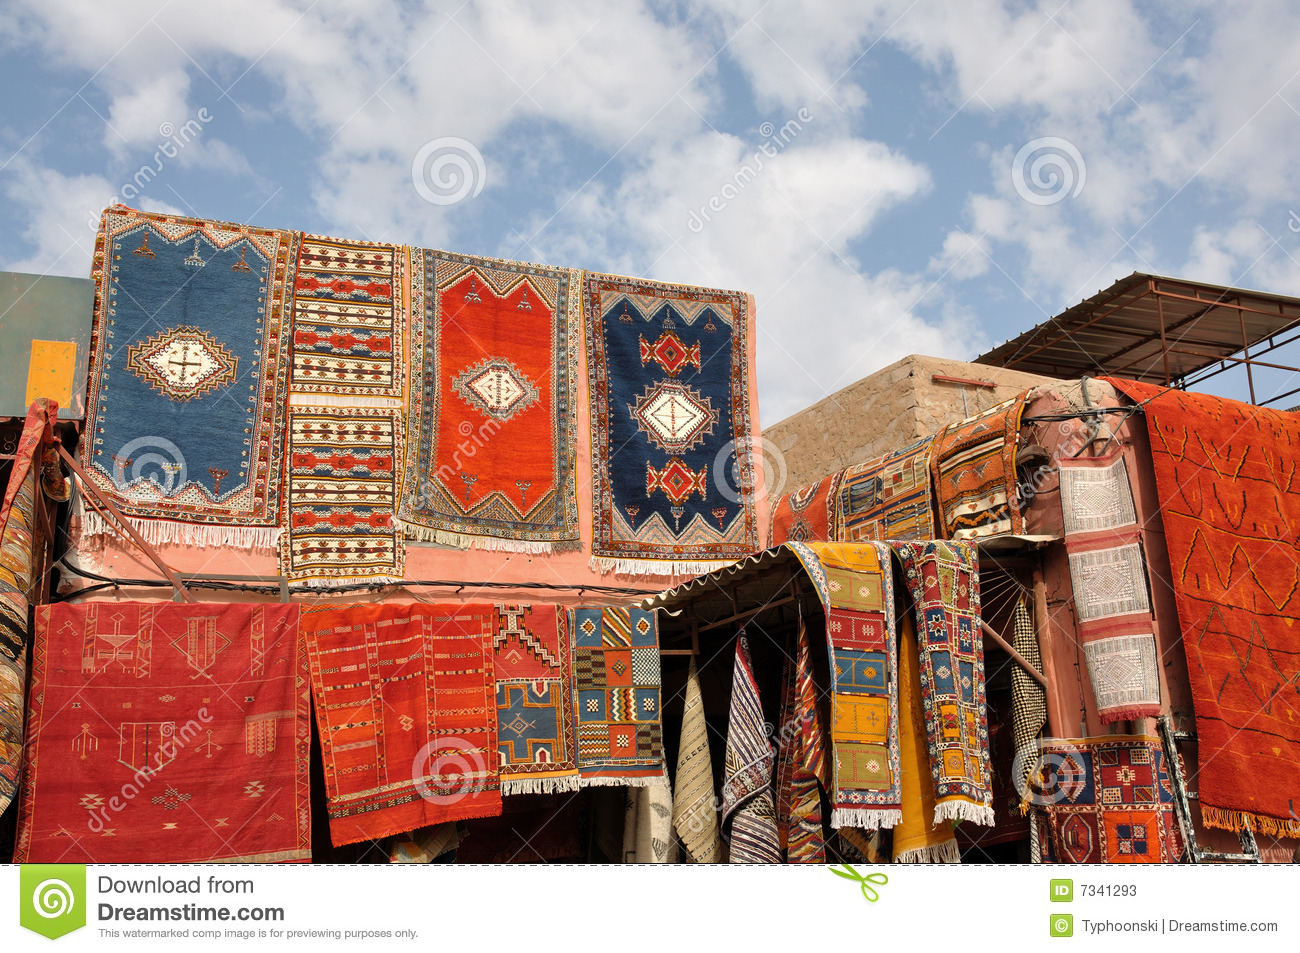 Moroccan Carpets For Sale Stock Photos  Image 7341293